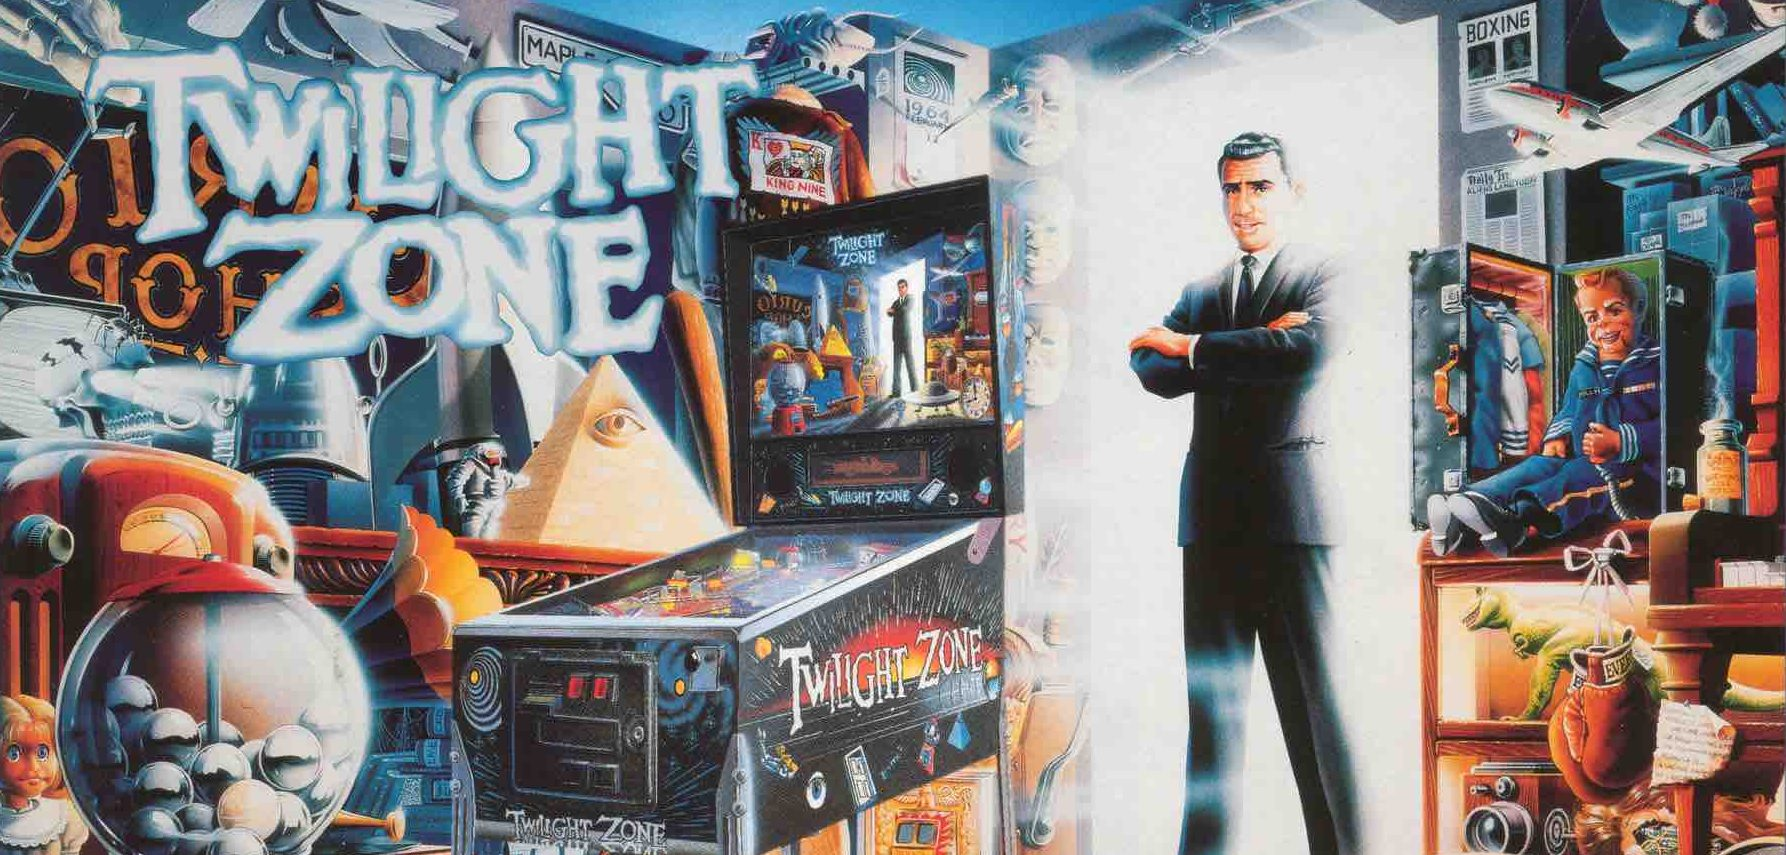 5 pinball games that would tickle the toughest MMA fighter